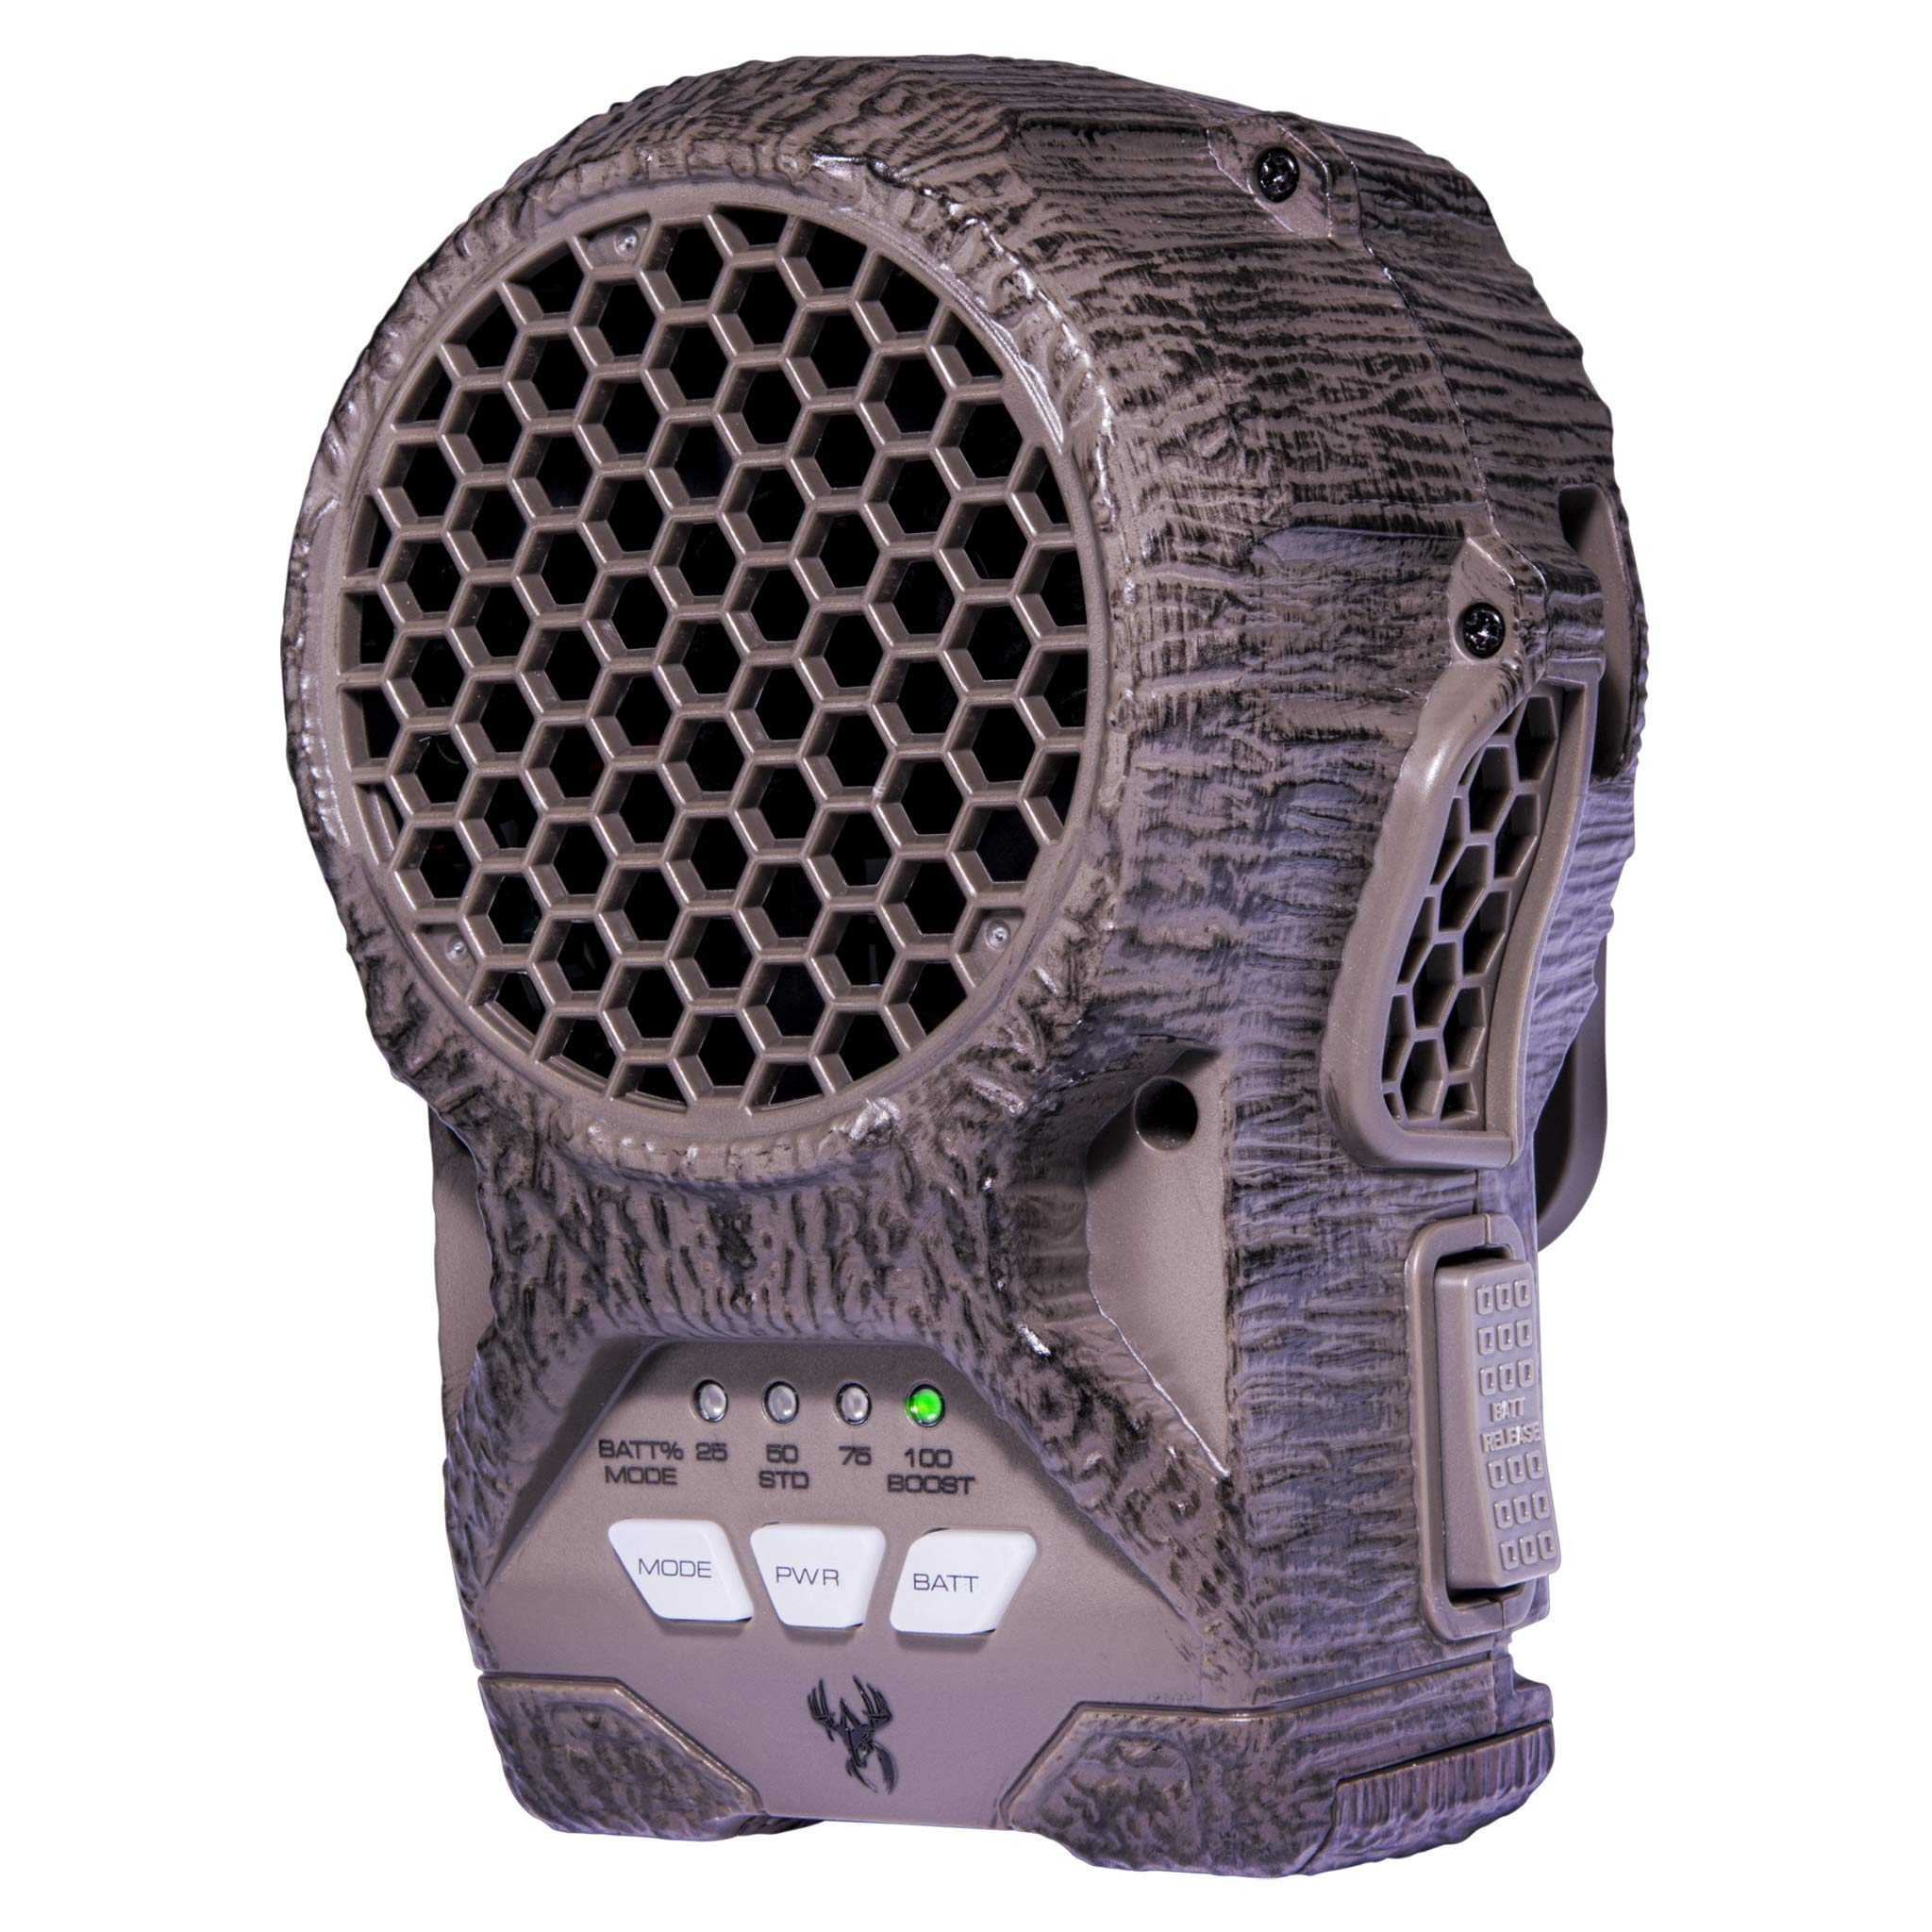 Wildgame Innovations ZeroTrace Plasma Ion Field Generator, Human Scent Neutralizer, Scent Elimination for The Field